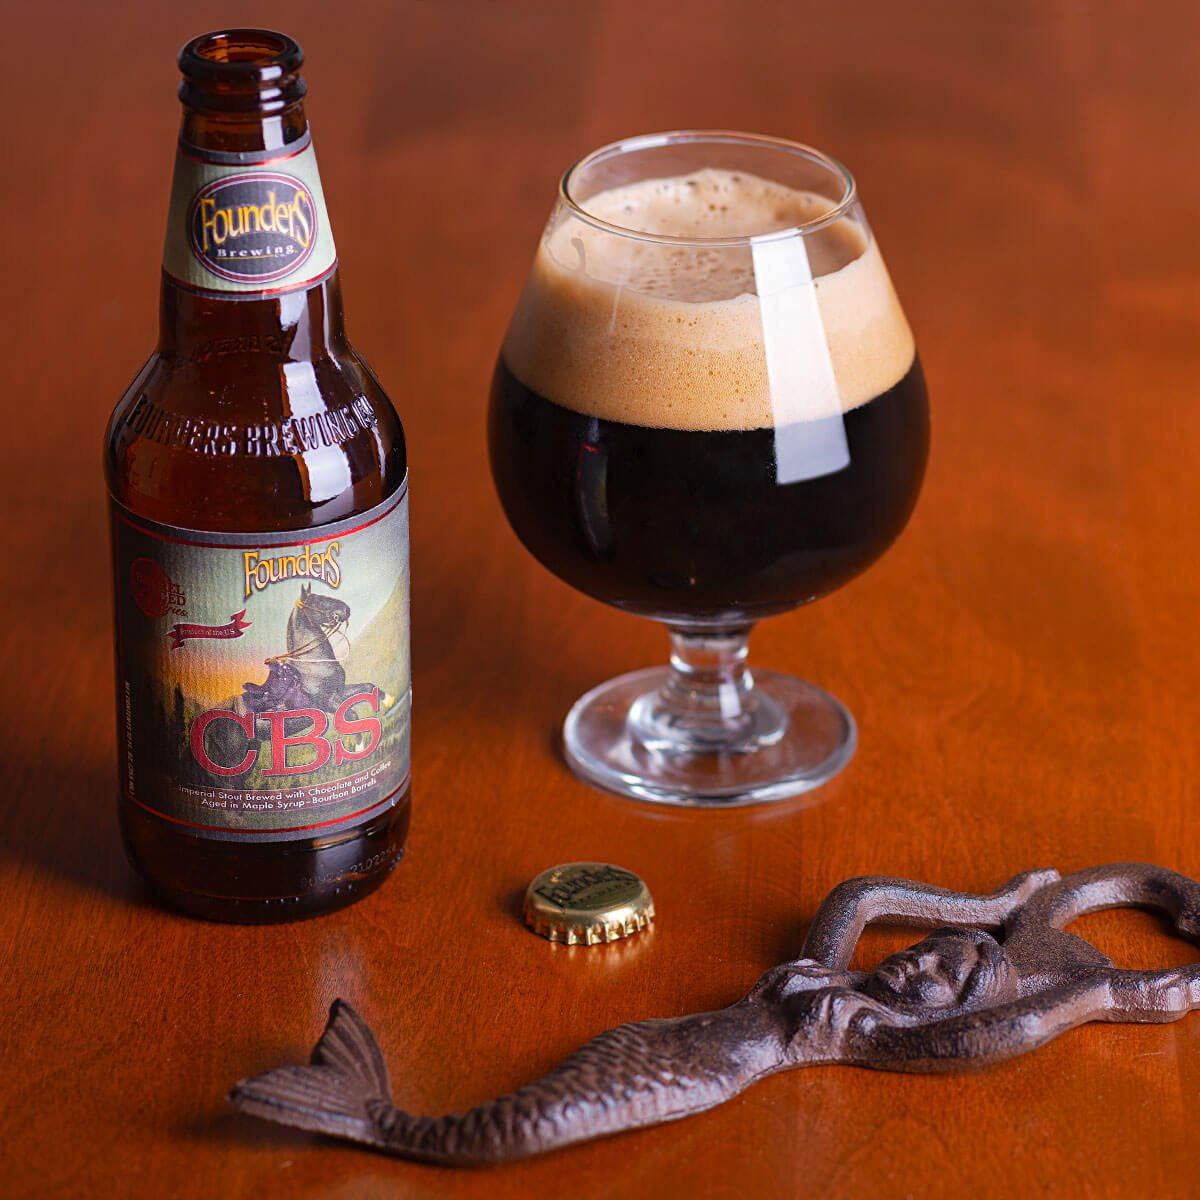 CBS (Canadian Breakfast Stout) is an American Imperial Stout by Founders Brewing Co. that masterfully blends coffee, maple, dark chocolate and bourbon.